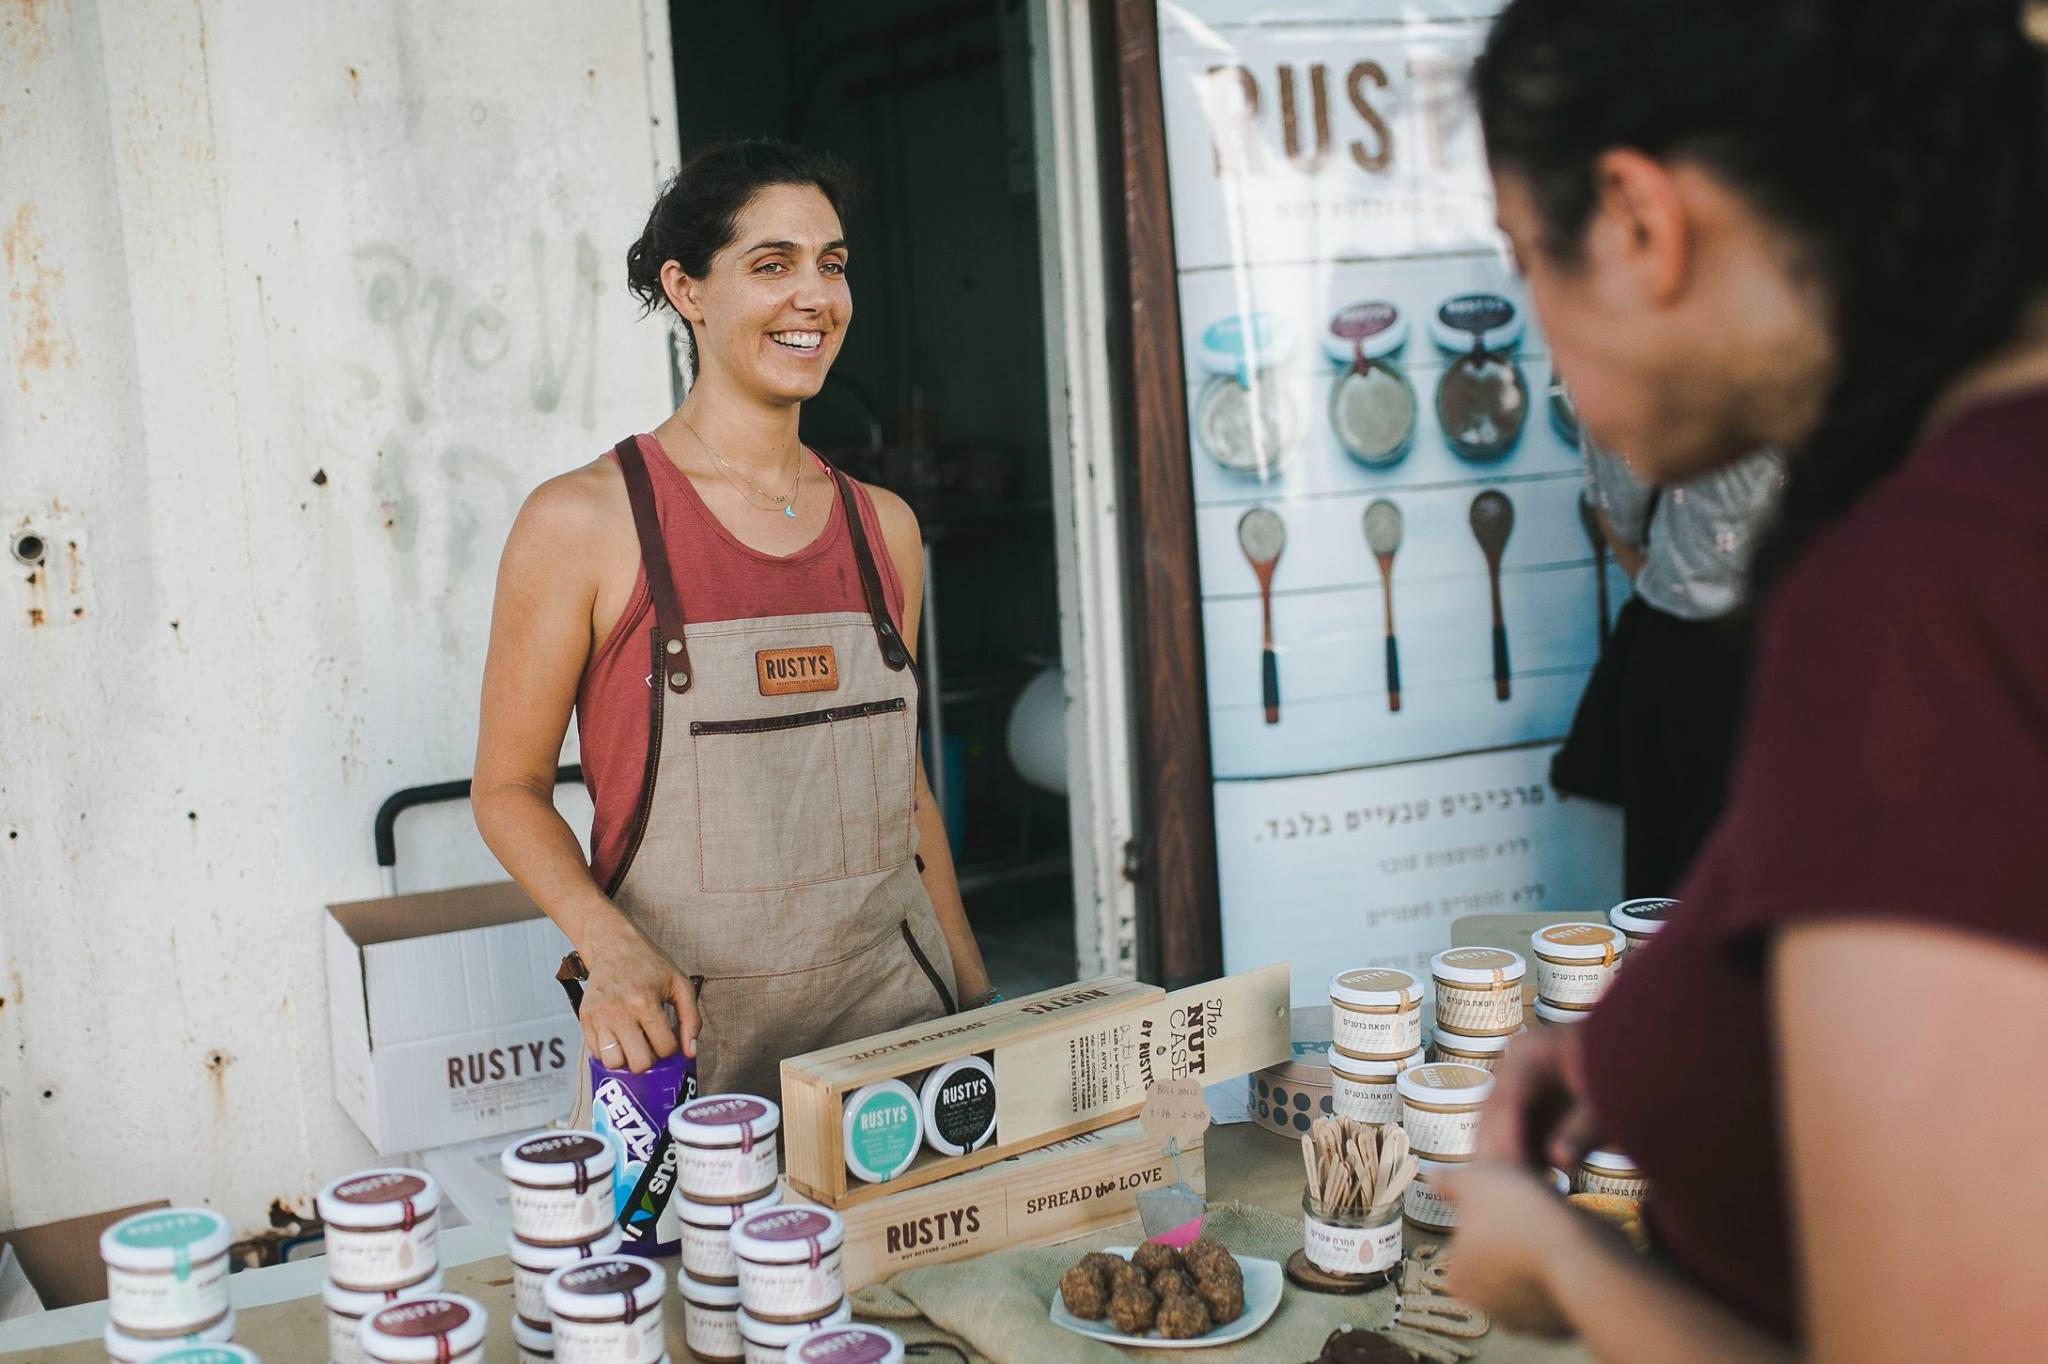 Beautiful Tal selling her wares at a local market